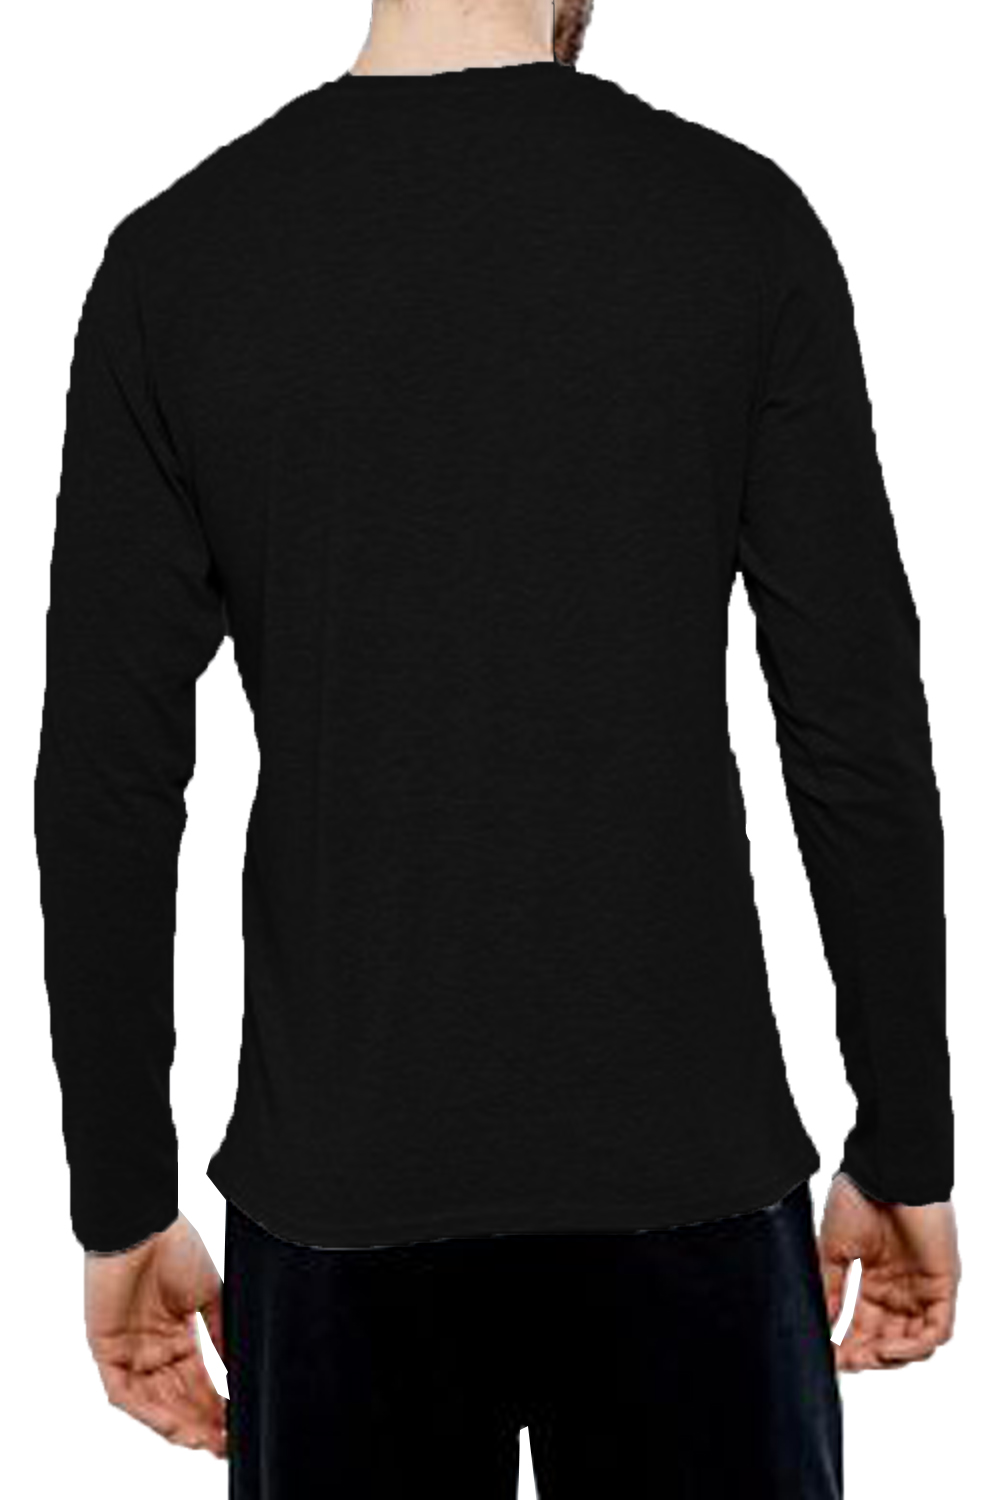 Threadbare-Mens-William-Long-Sleeve-T-Shirt-Cotton-Stretch-Round-Neck-Winter-Top thumbnail 4